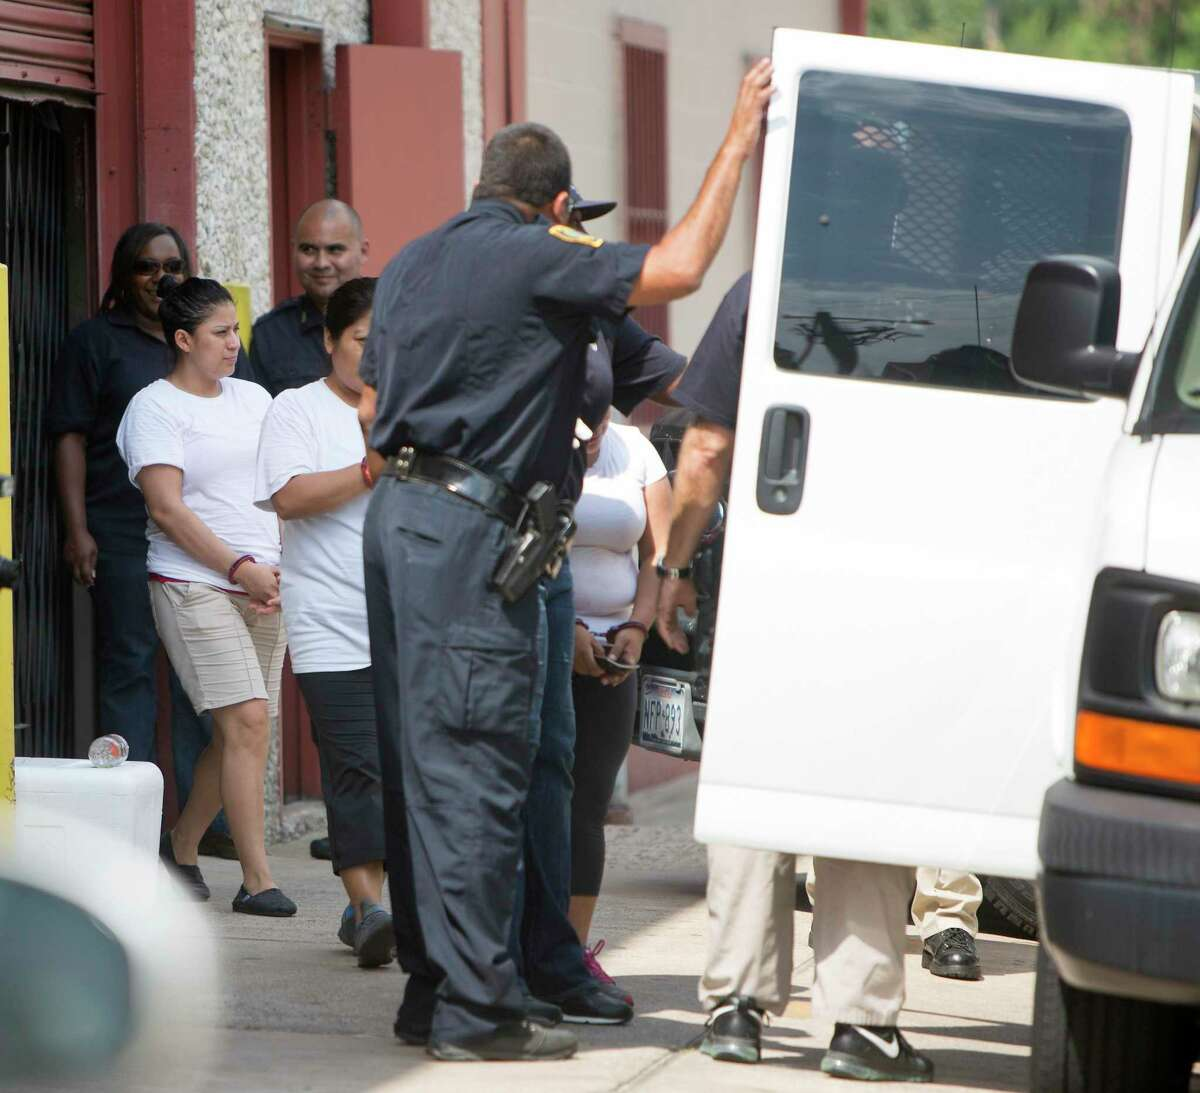 Federal agents raid a tortilla factory in the Heights, Tuesday, Aug. 4, 2015, in Houston. Raids reportedly planned in Houston and other cities starting Sunday differ from previous enforcement efforts in scope and targets.